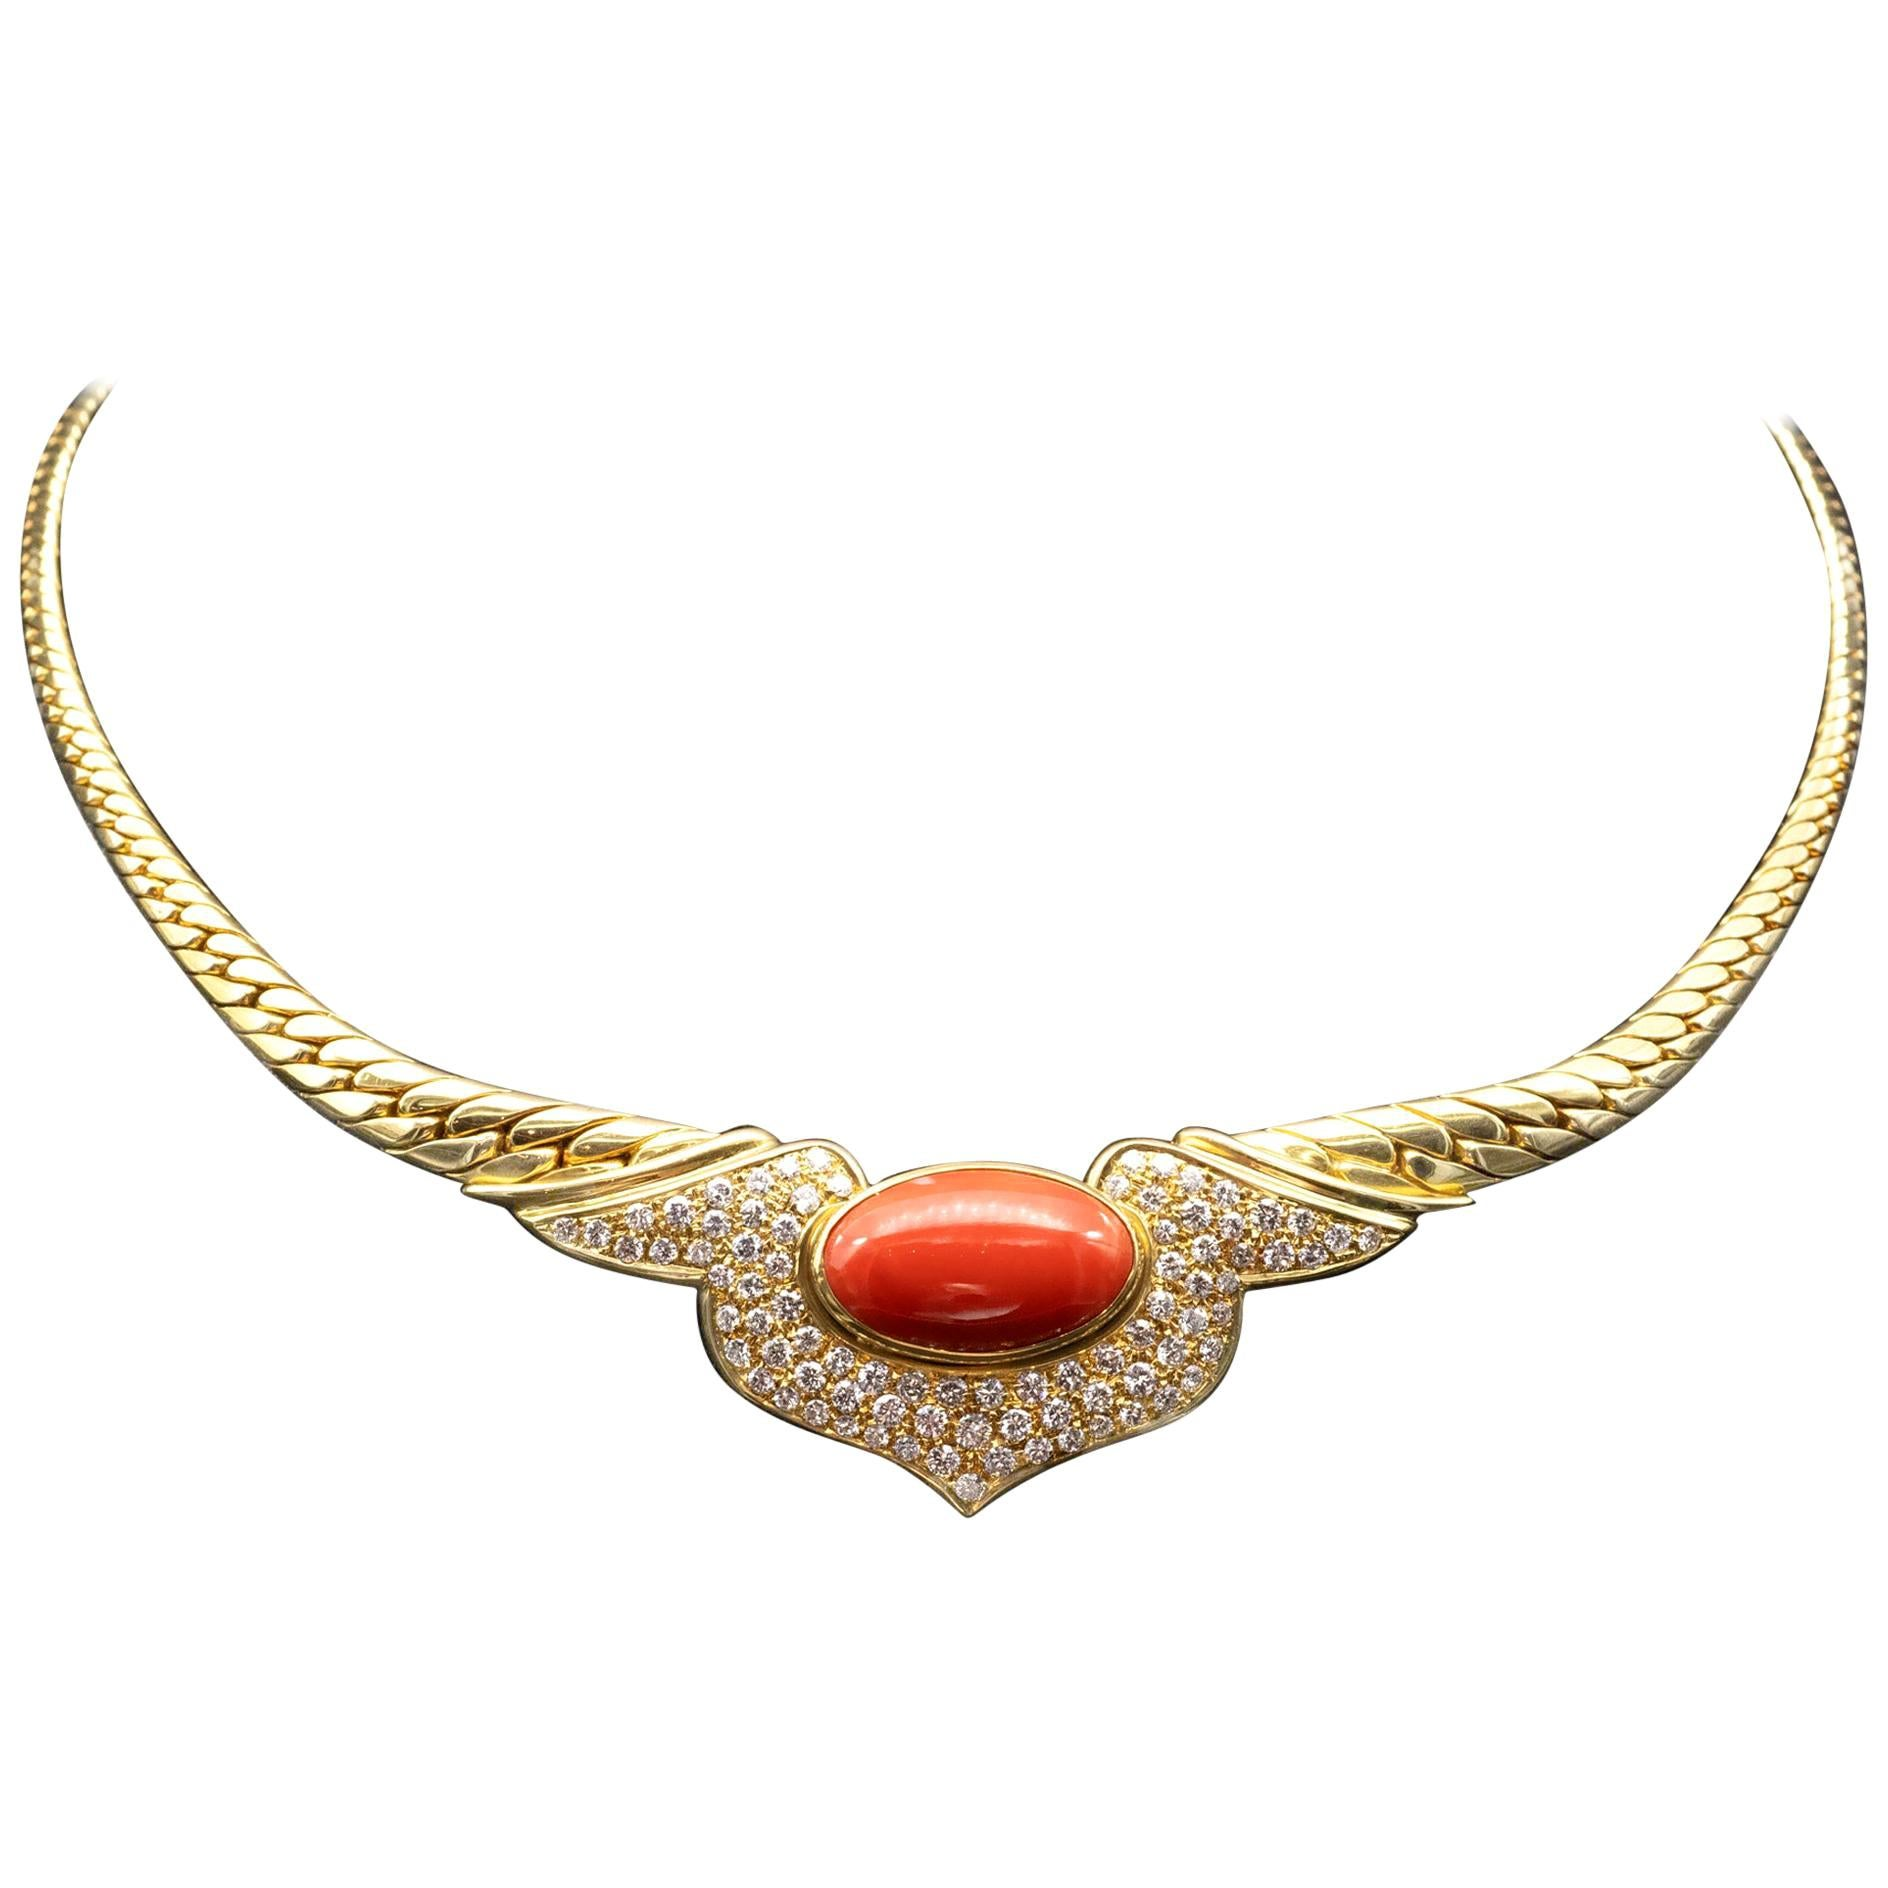 18 Karat Coral and Diamond Necklace